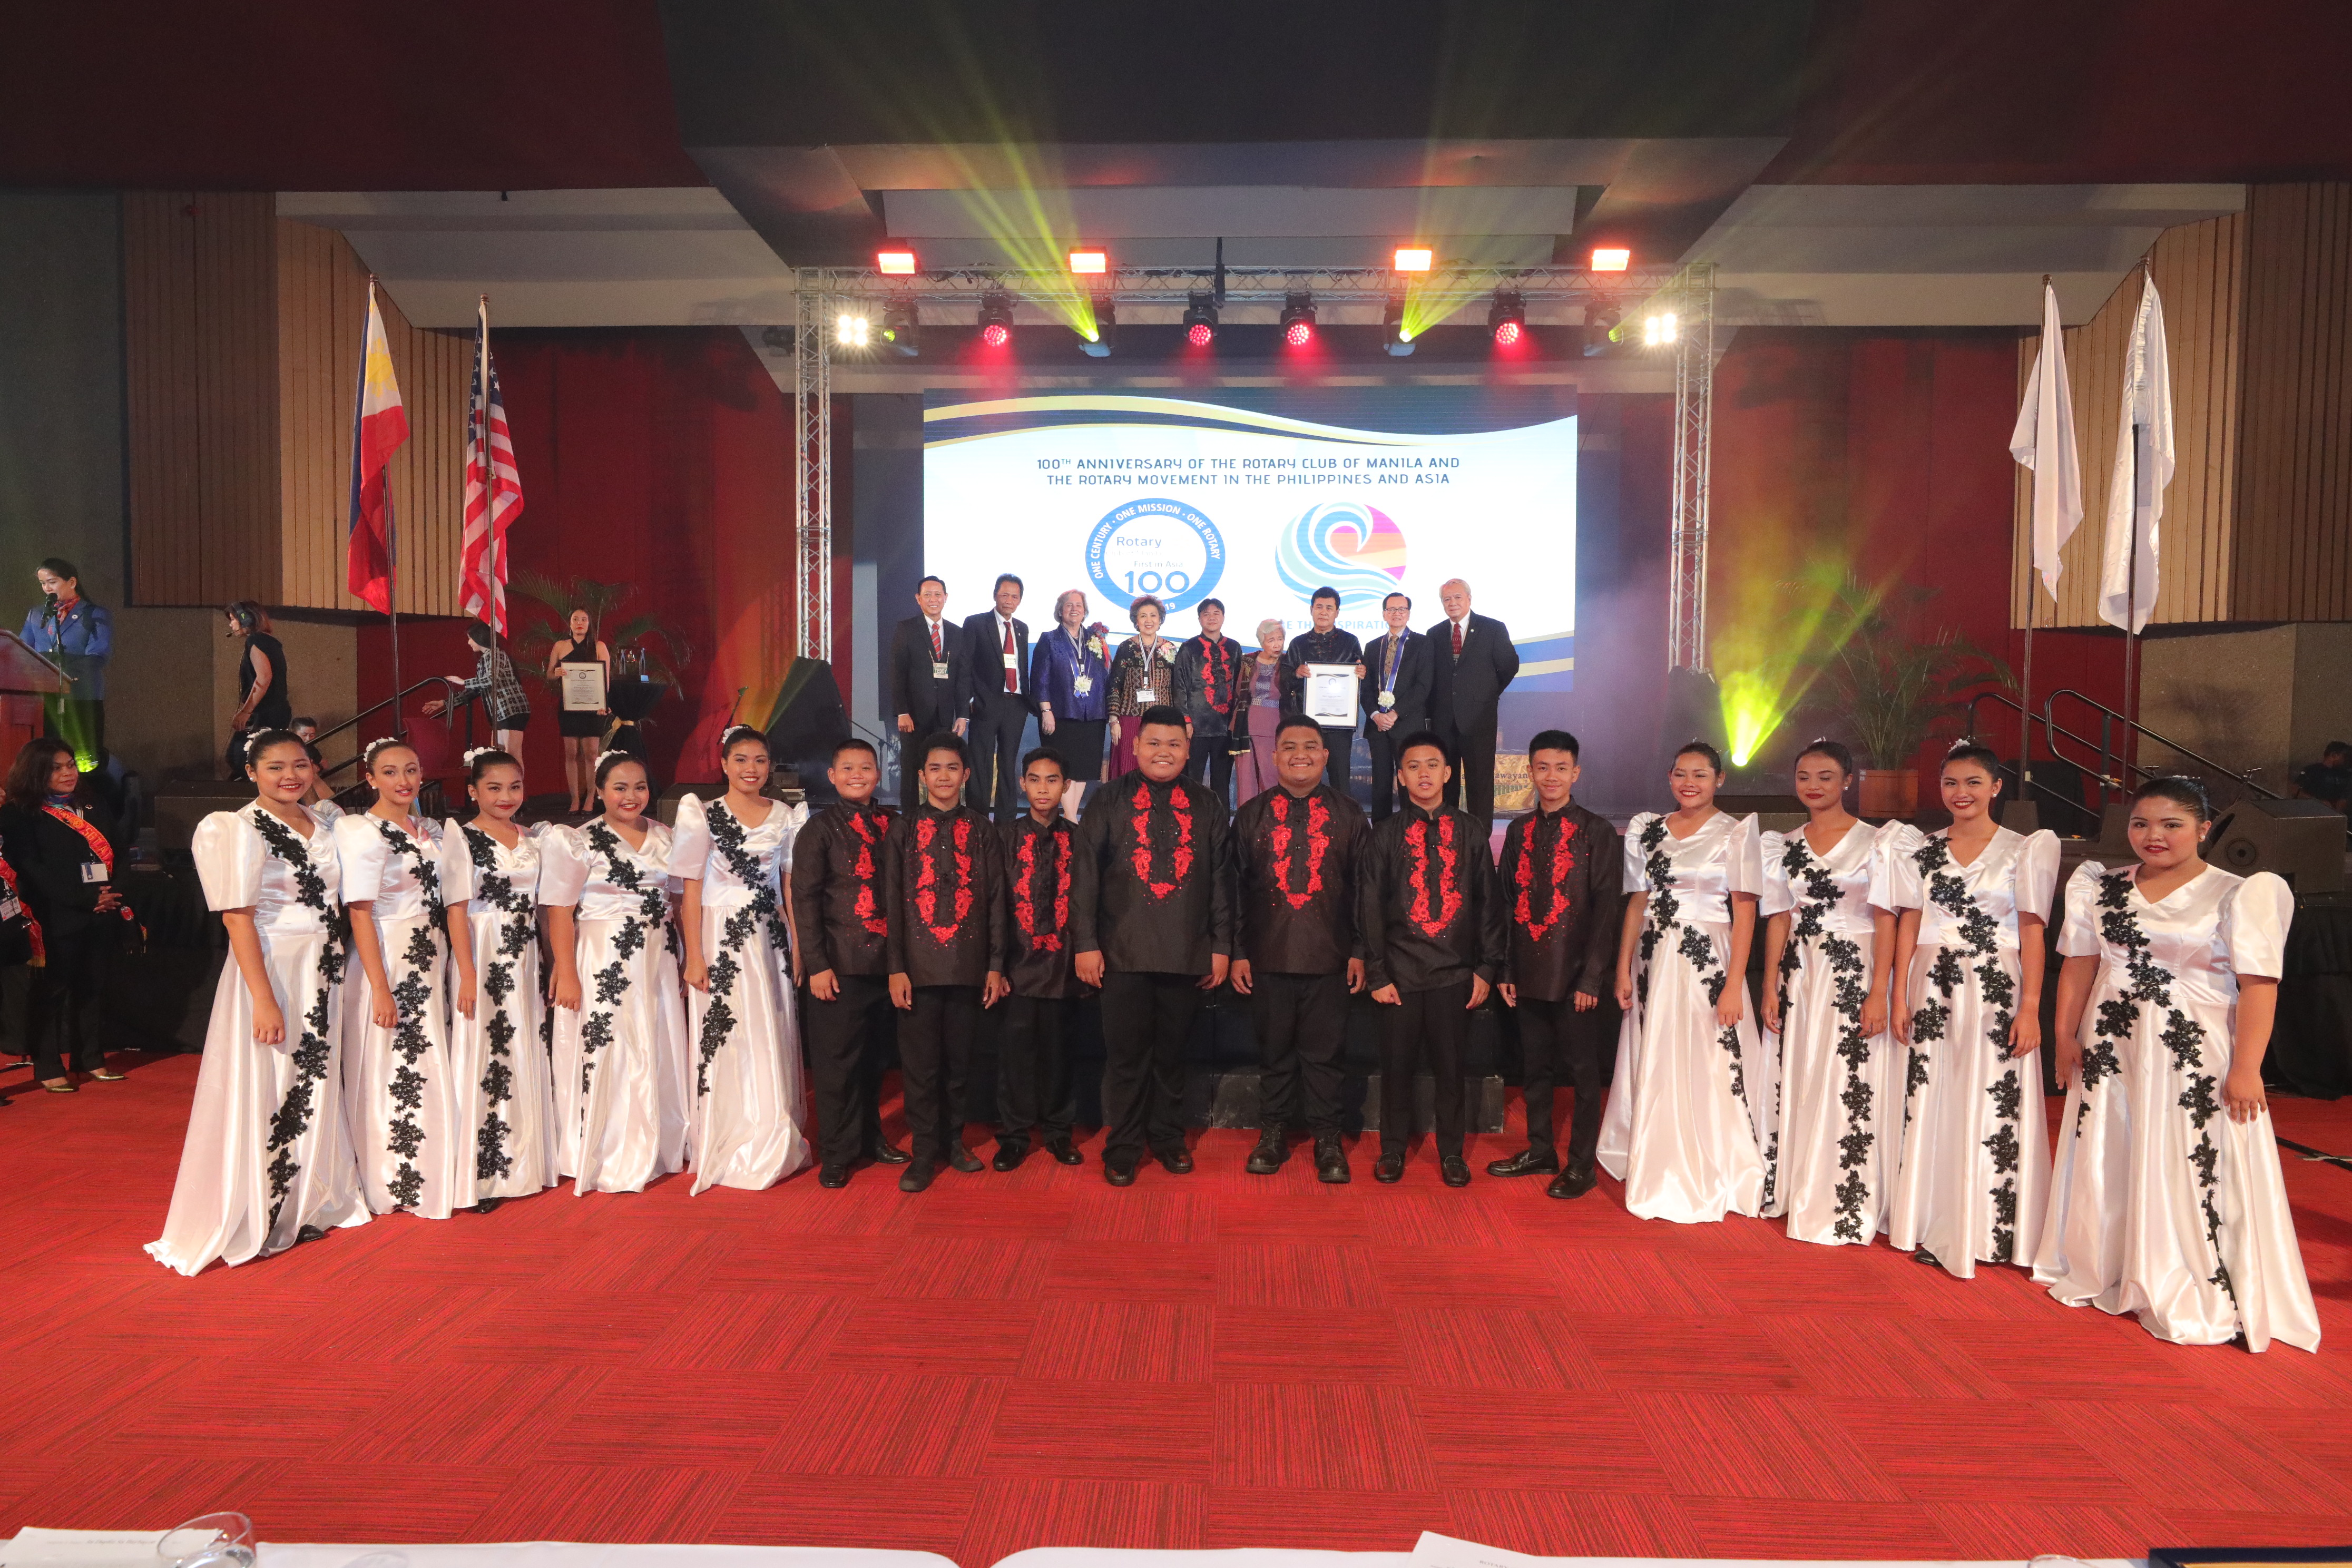 Briones lauds Rotary Club of Manila's centennial chorale